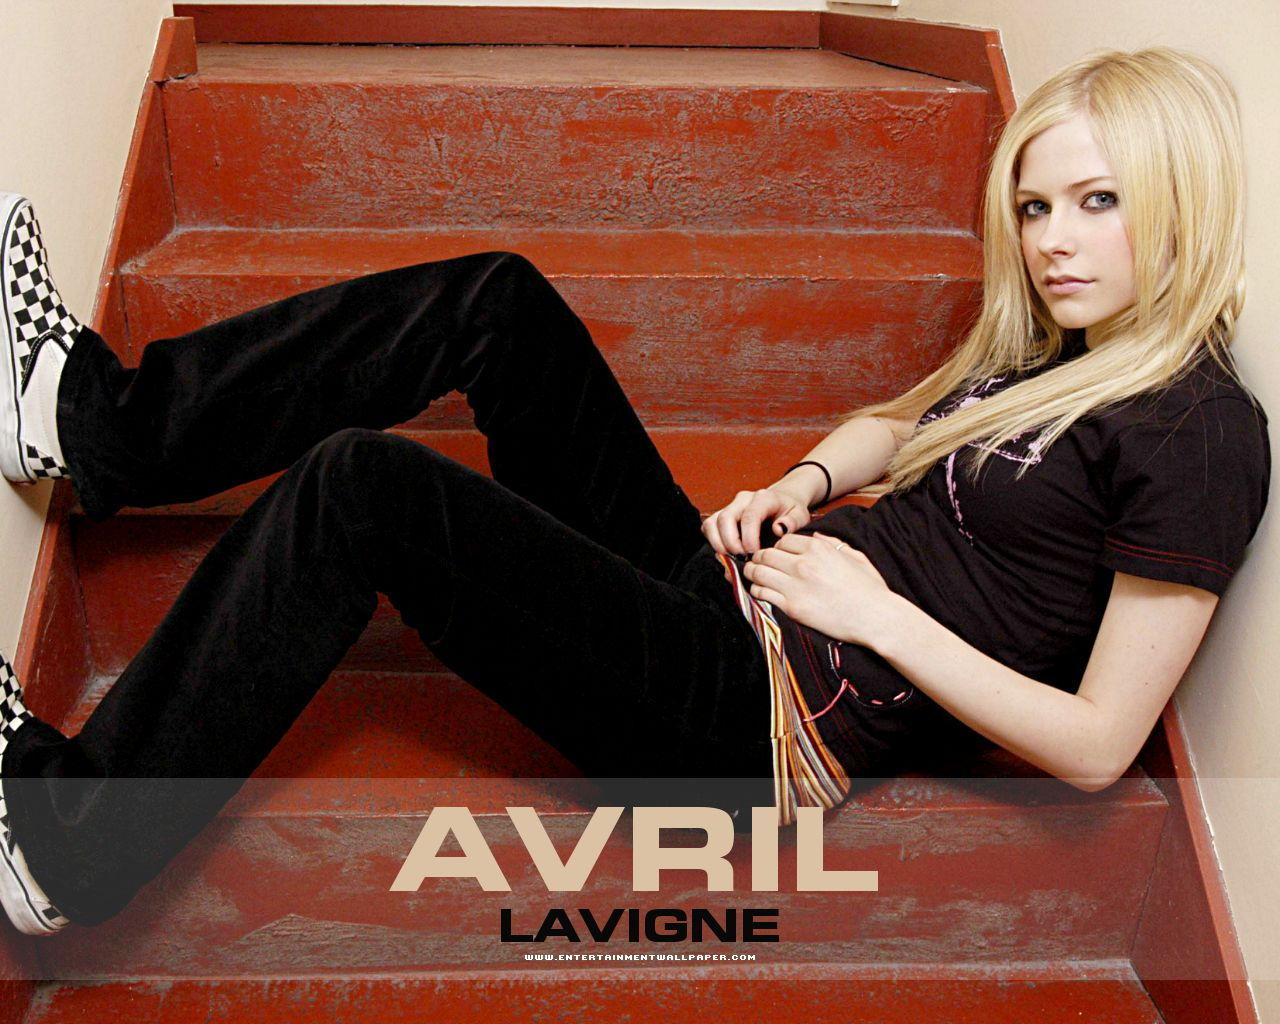 http://images2.fanpop.com/images/photos/6400000/-Avril-avril-lavigne-6446927-1280-1024.jpg